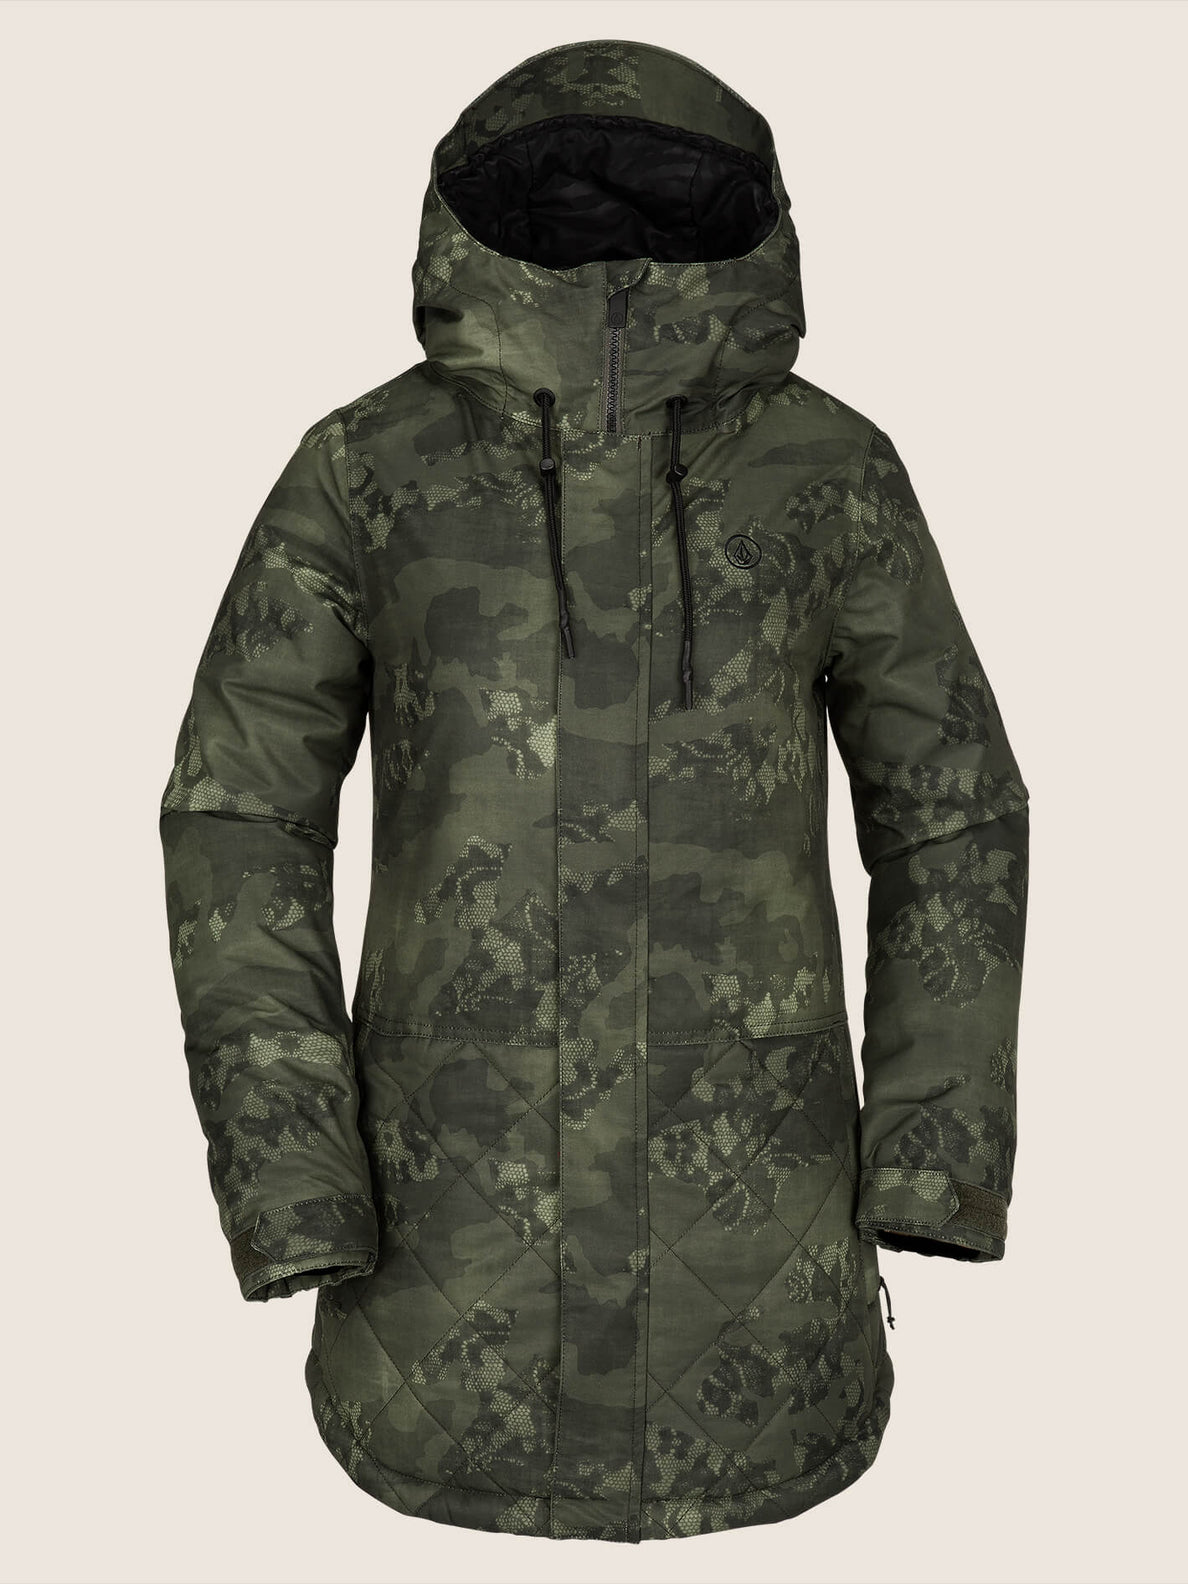 Winrose Insulated Jacket In Camouflage, Front View